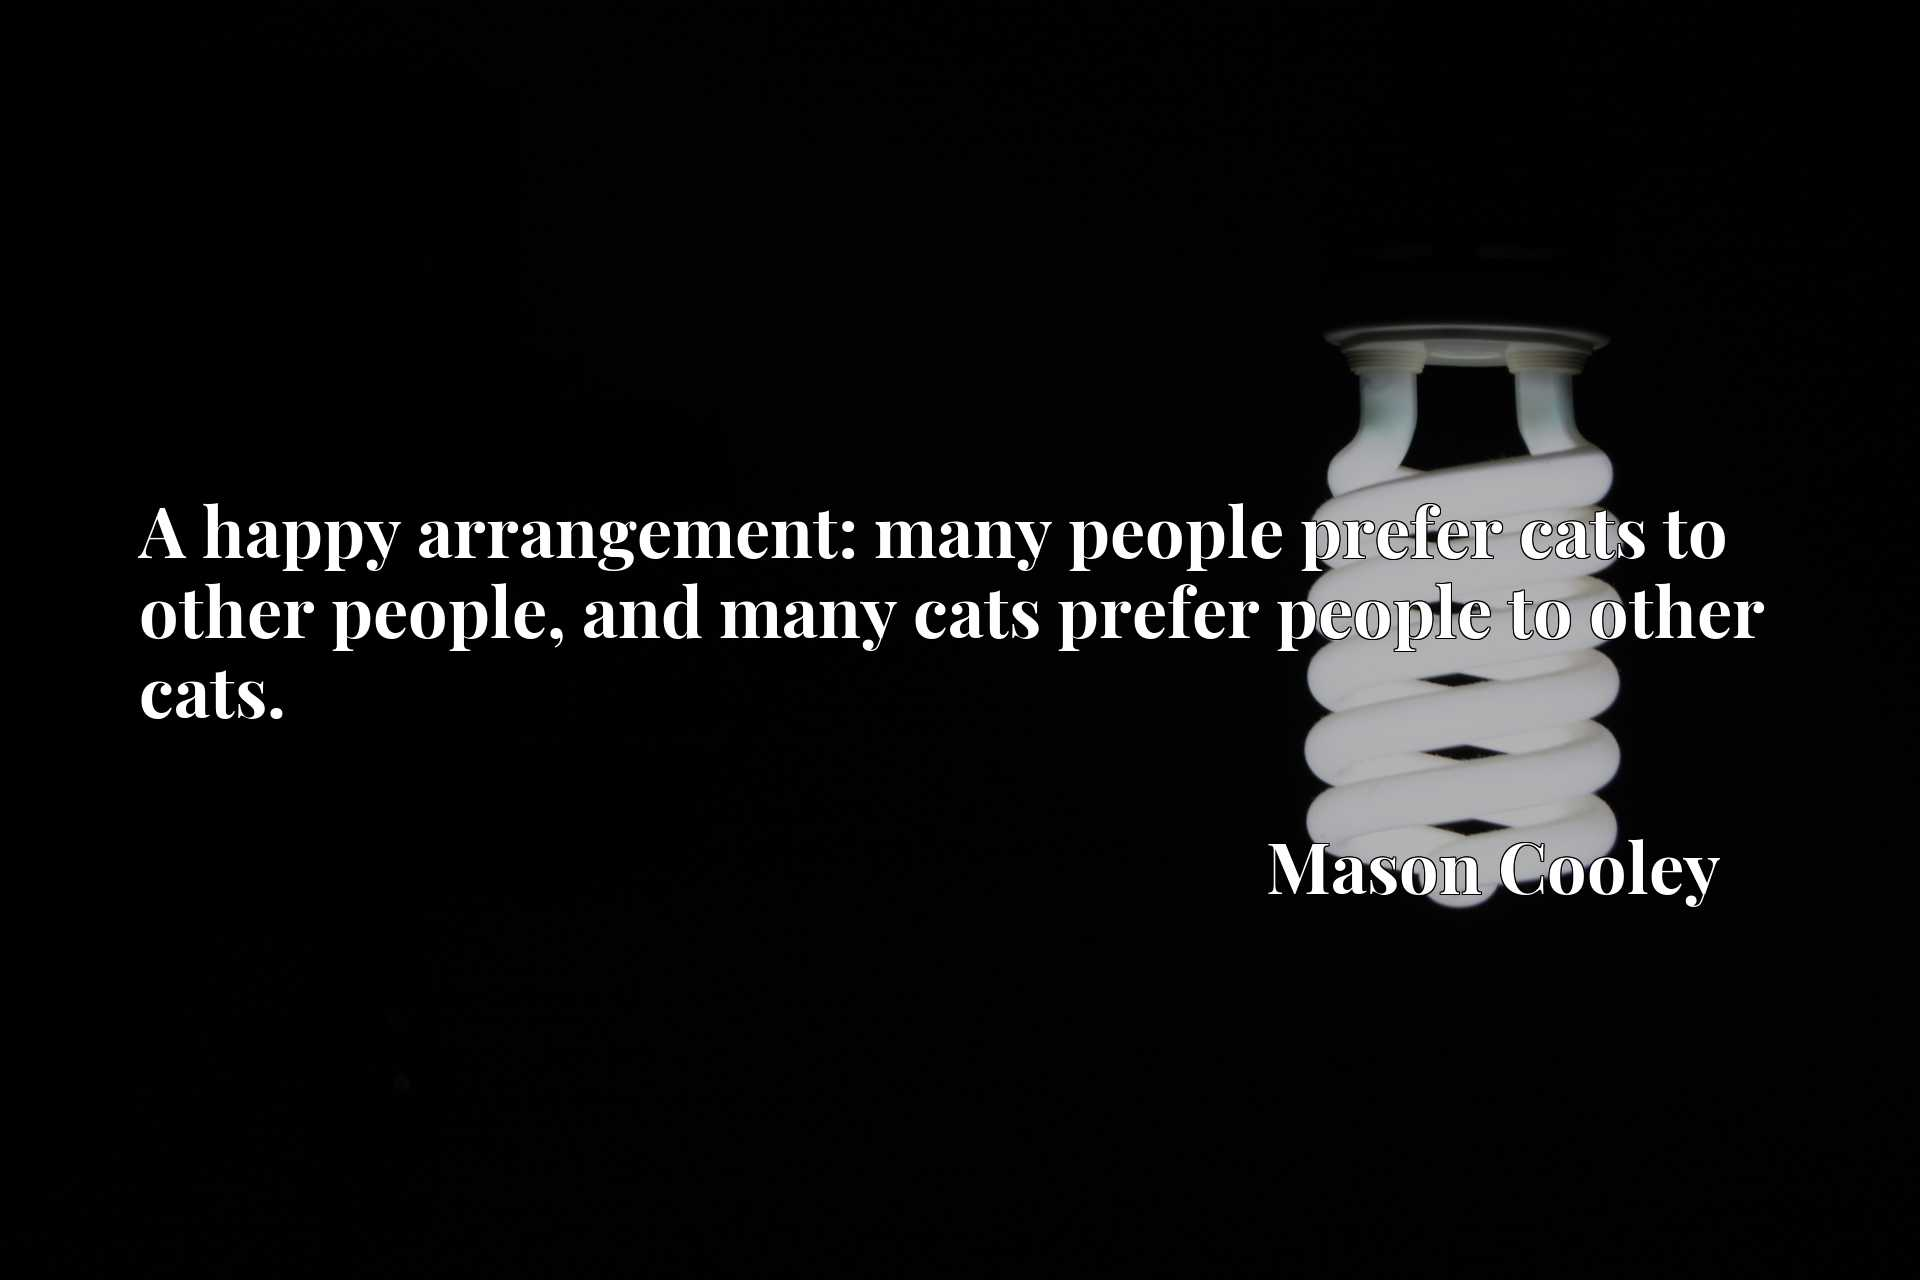 A happy arrangement: many people prefer cats to other people, and many cats prefer people to other cats.